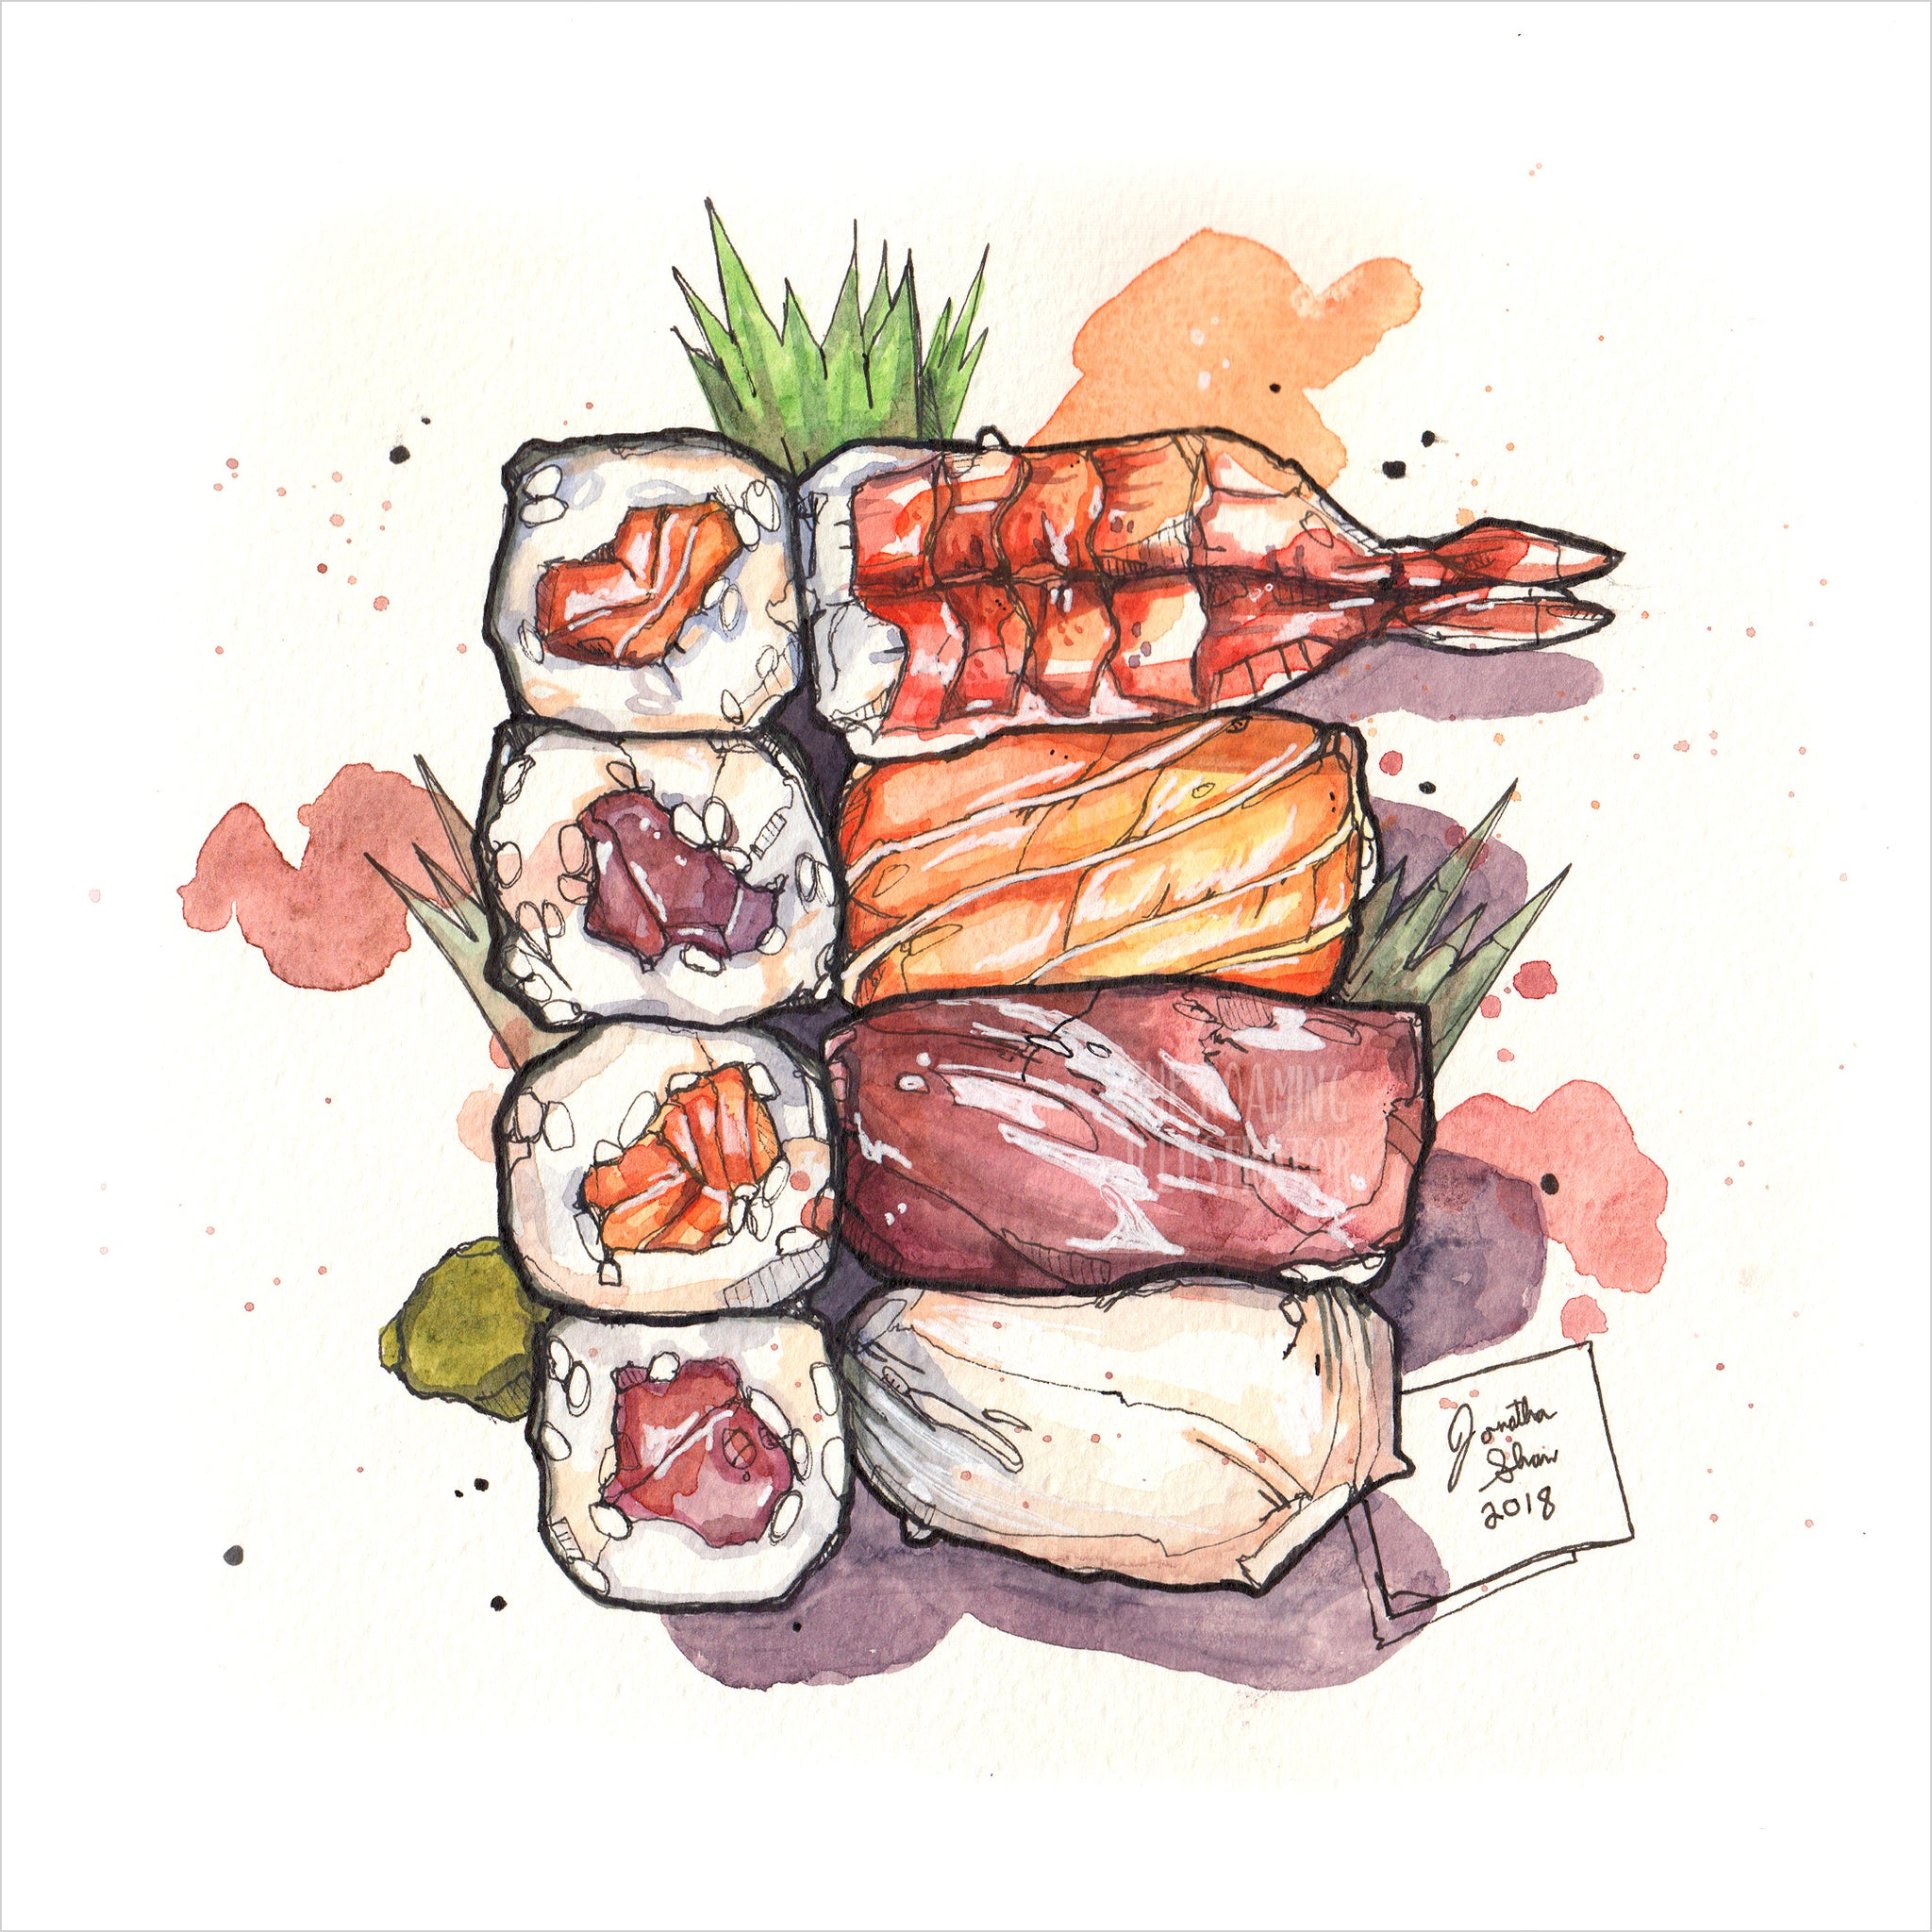 """Sushi Tray"" - Original 8x10 Illustration (SOLD)"